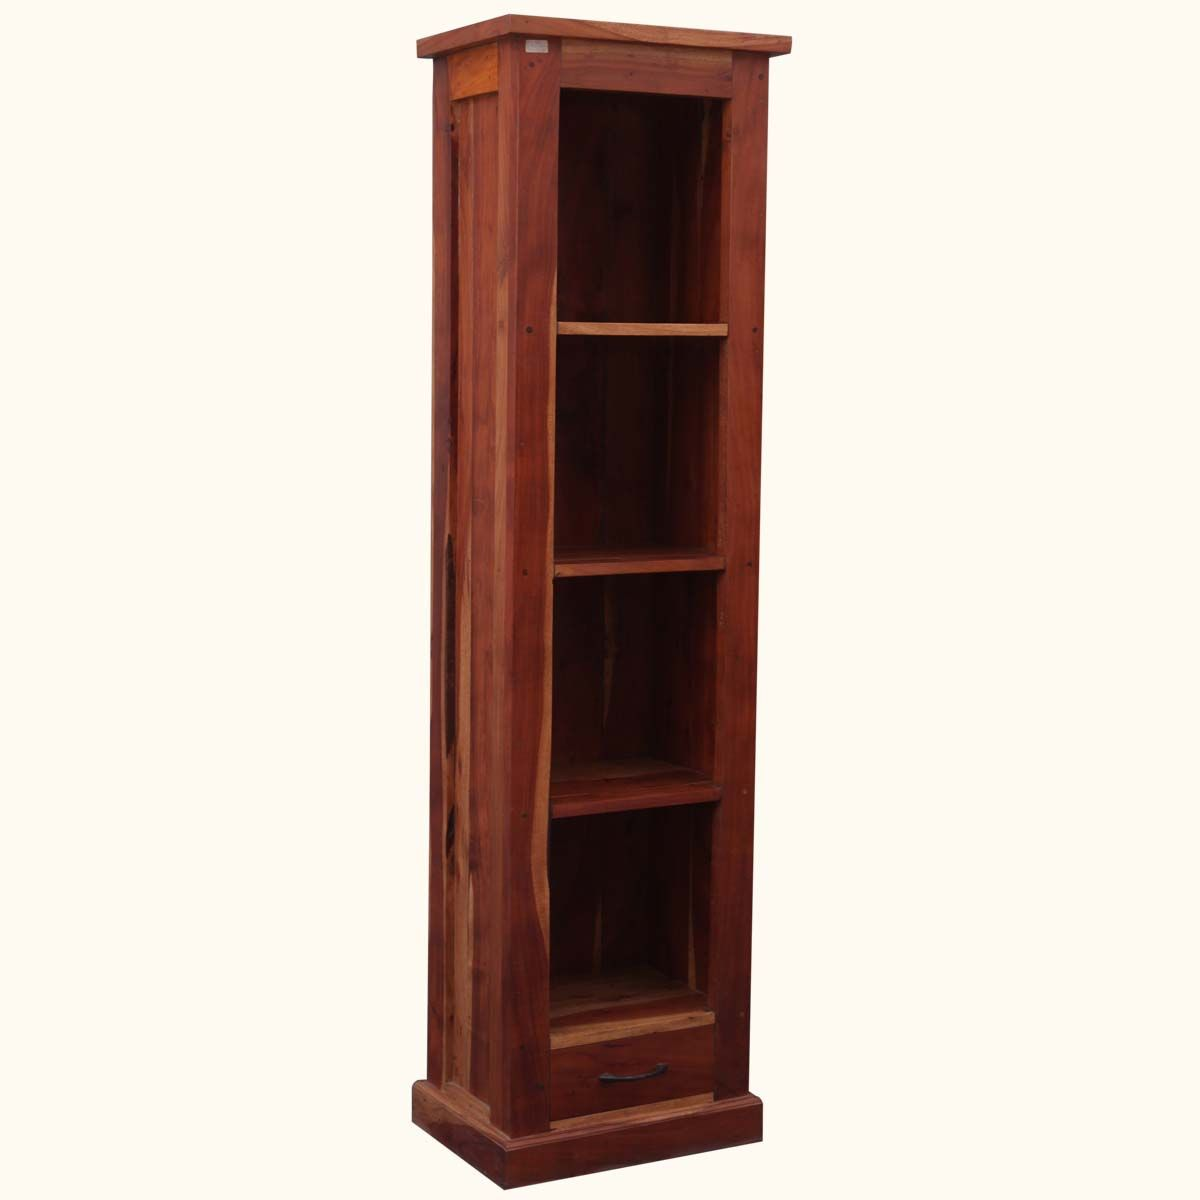 "Mission Solid #Hardwood 4-Shelf 69"" Tower Open Cabinet #Bookcase #interiors #contemporaryfurniture #homedecor #furniture #homeinspiration   http://www.sierralivingconcepts.com/"